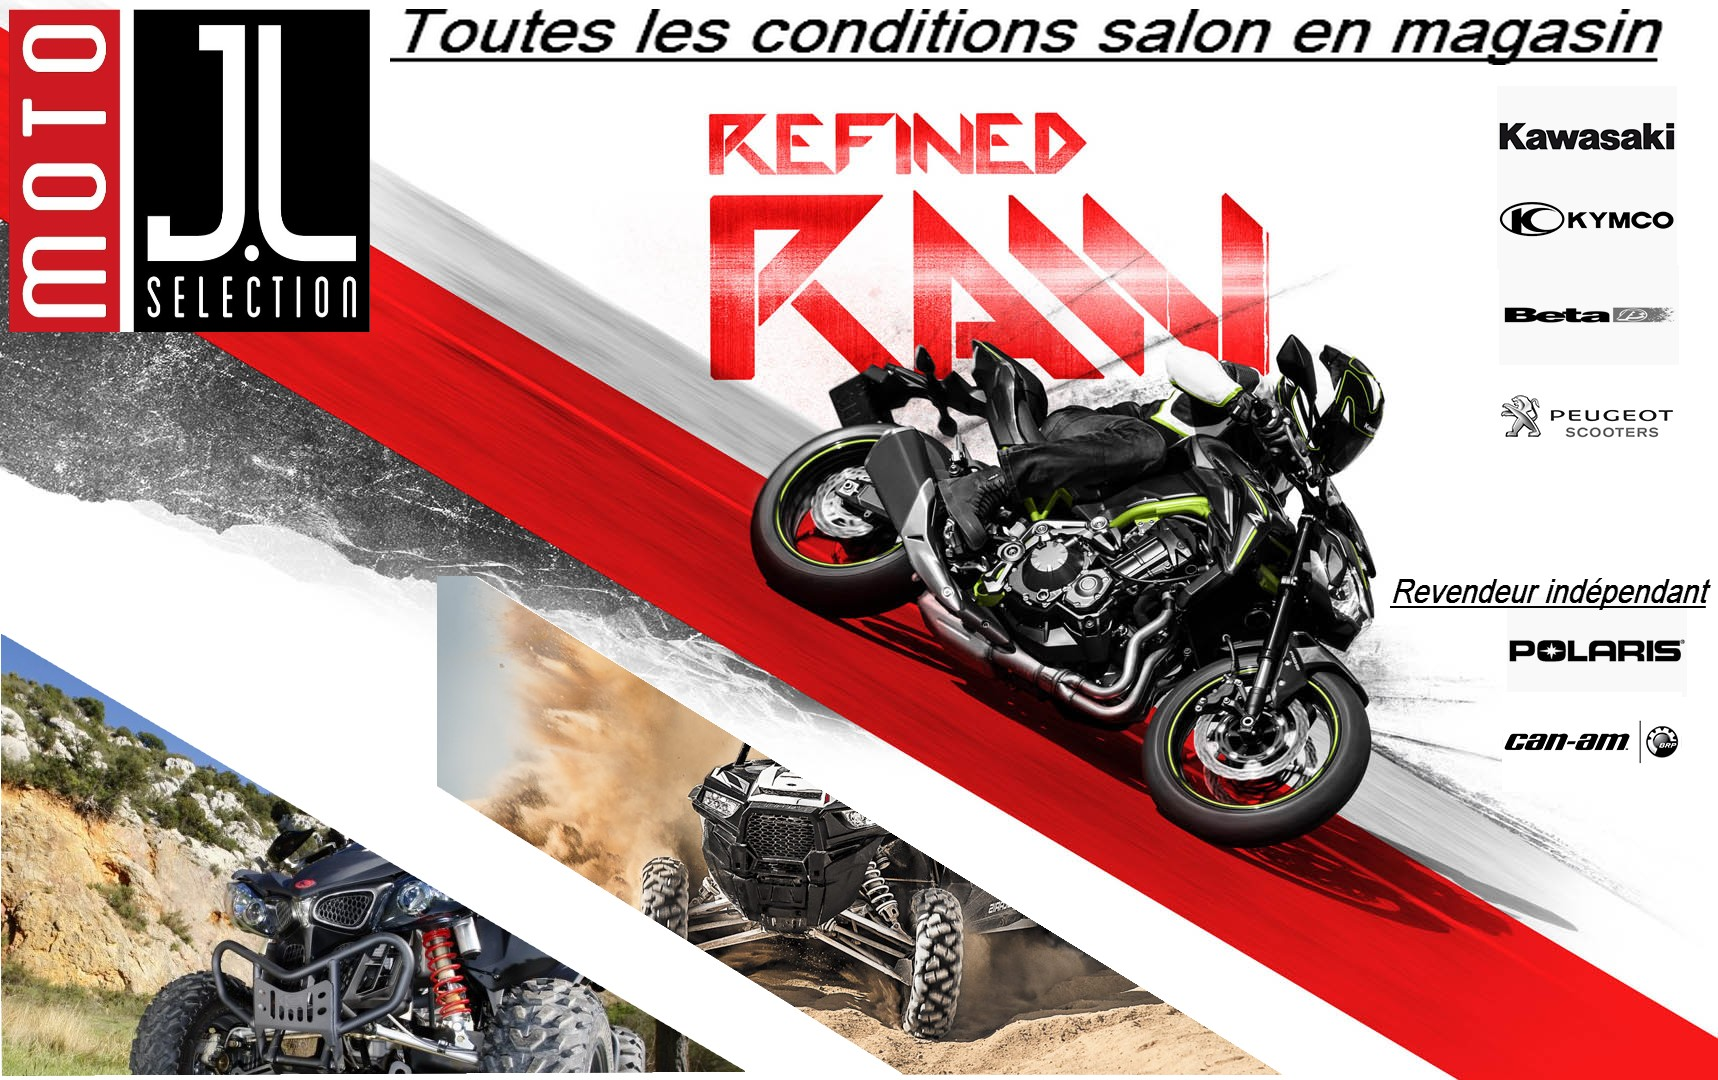 Conditions salon chez moto jl s lection moto jl selection for Reduction salon de la moto